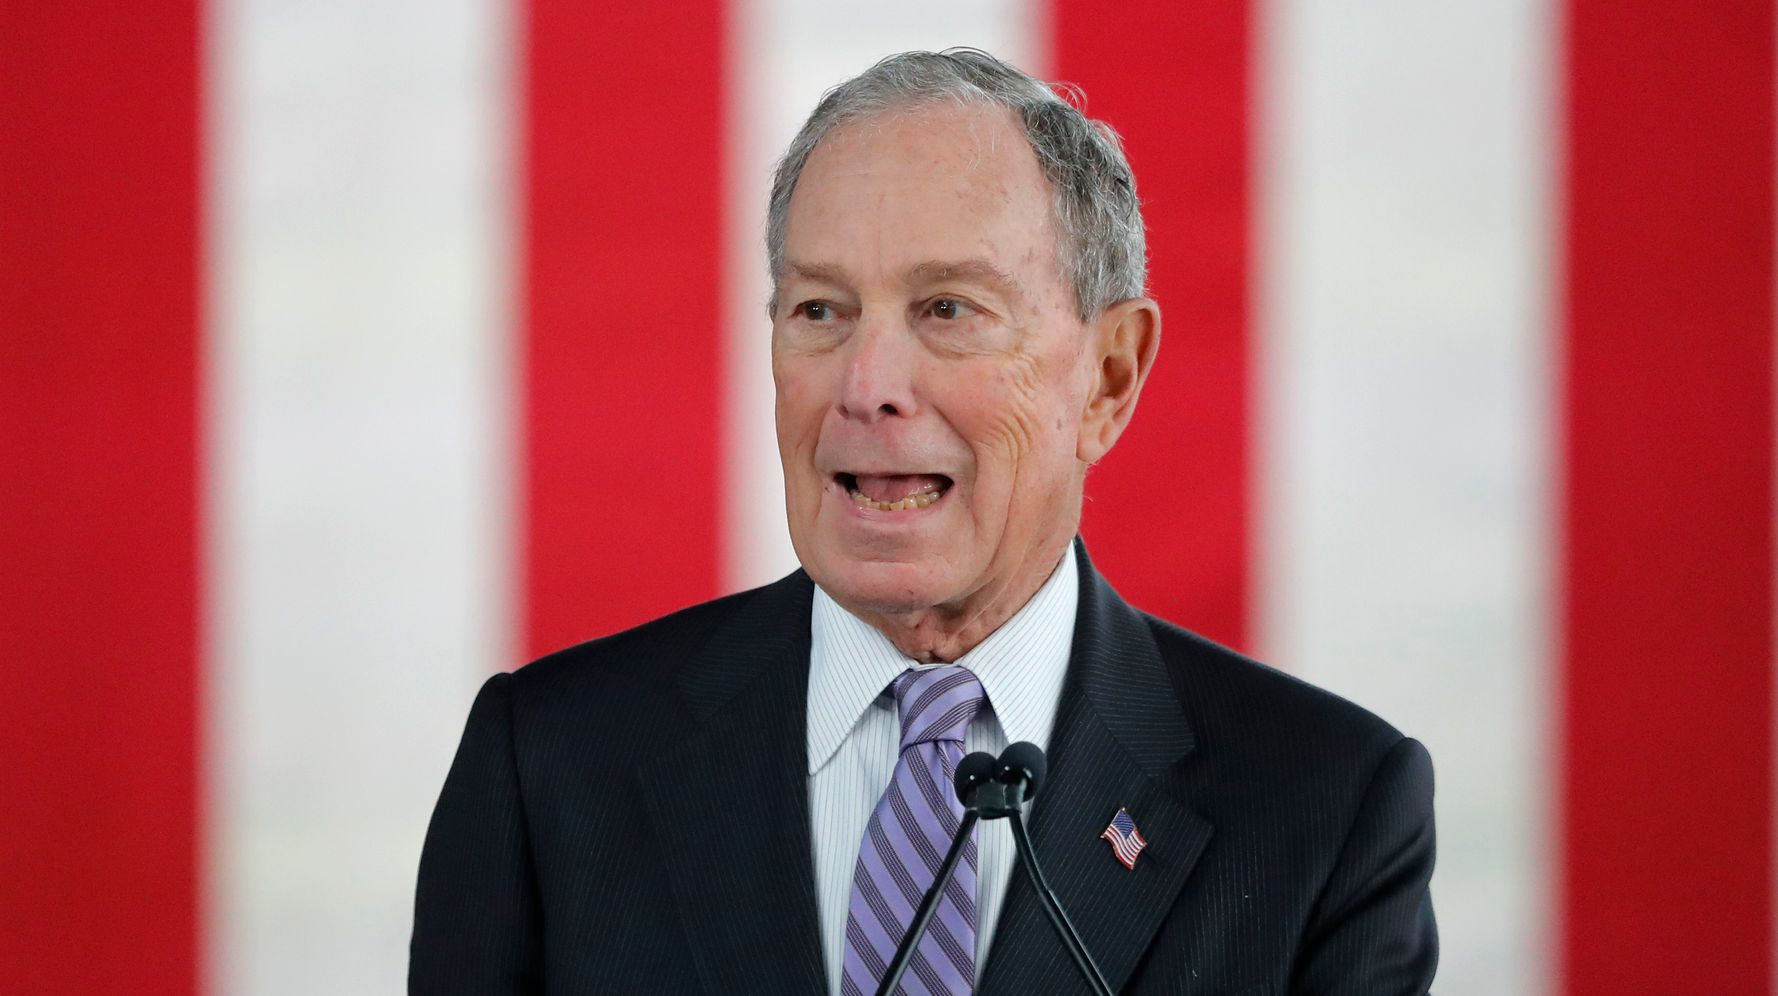 Westlake Legal Group 5e4bbf0d230000330039b49d Bloomberg Makes Debate Stage, Facing Democratic Rivals For 1st Time